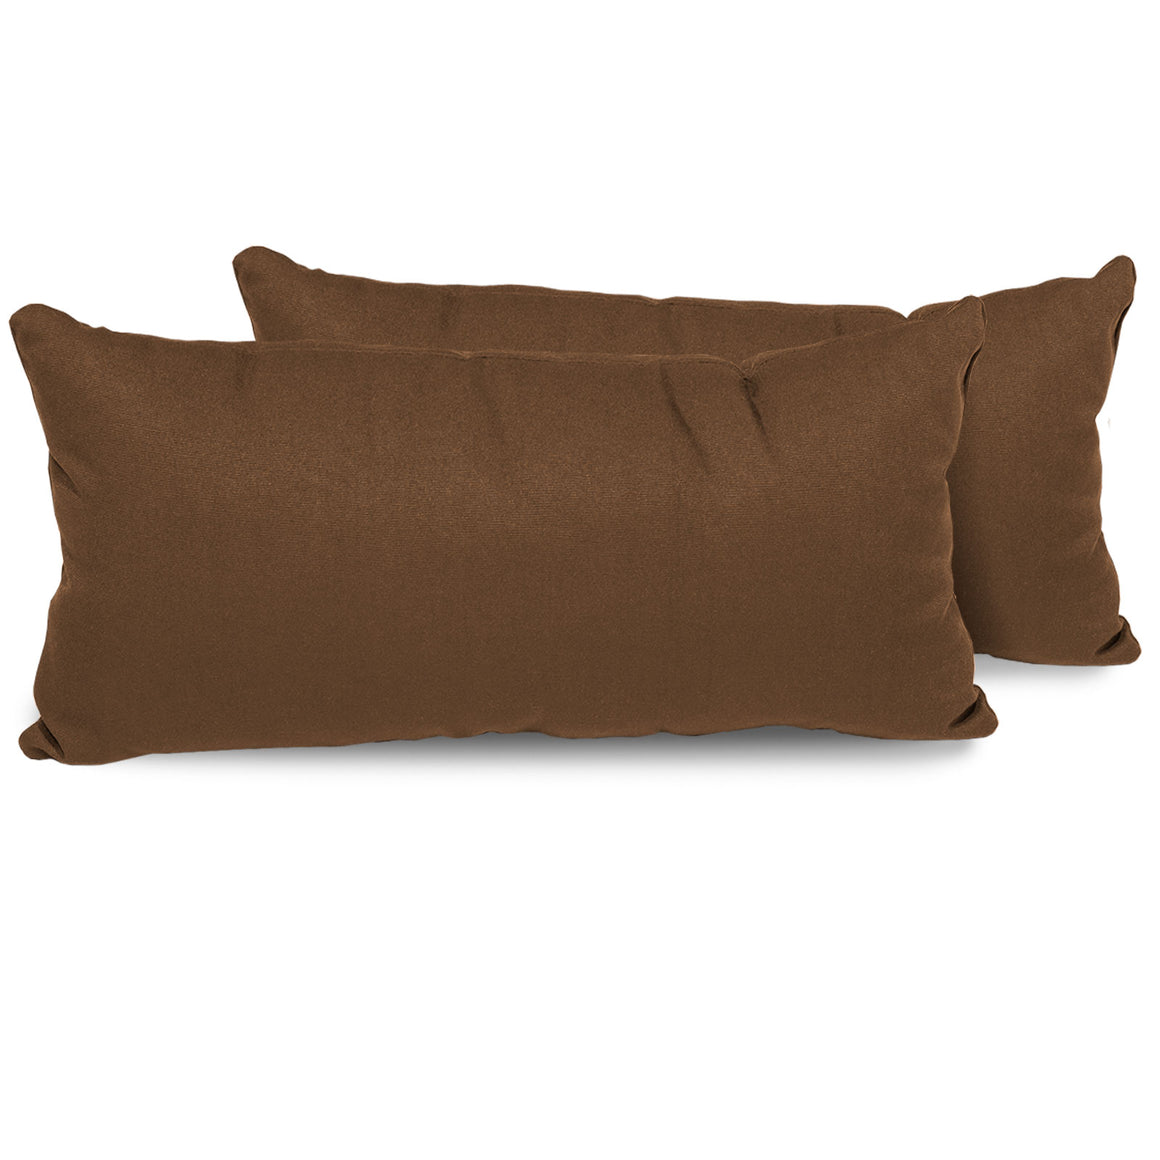 Cocoa Outdoor Throw Pillows Rectangle Set of 2 , TK Classics- grayburd